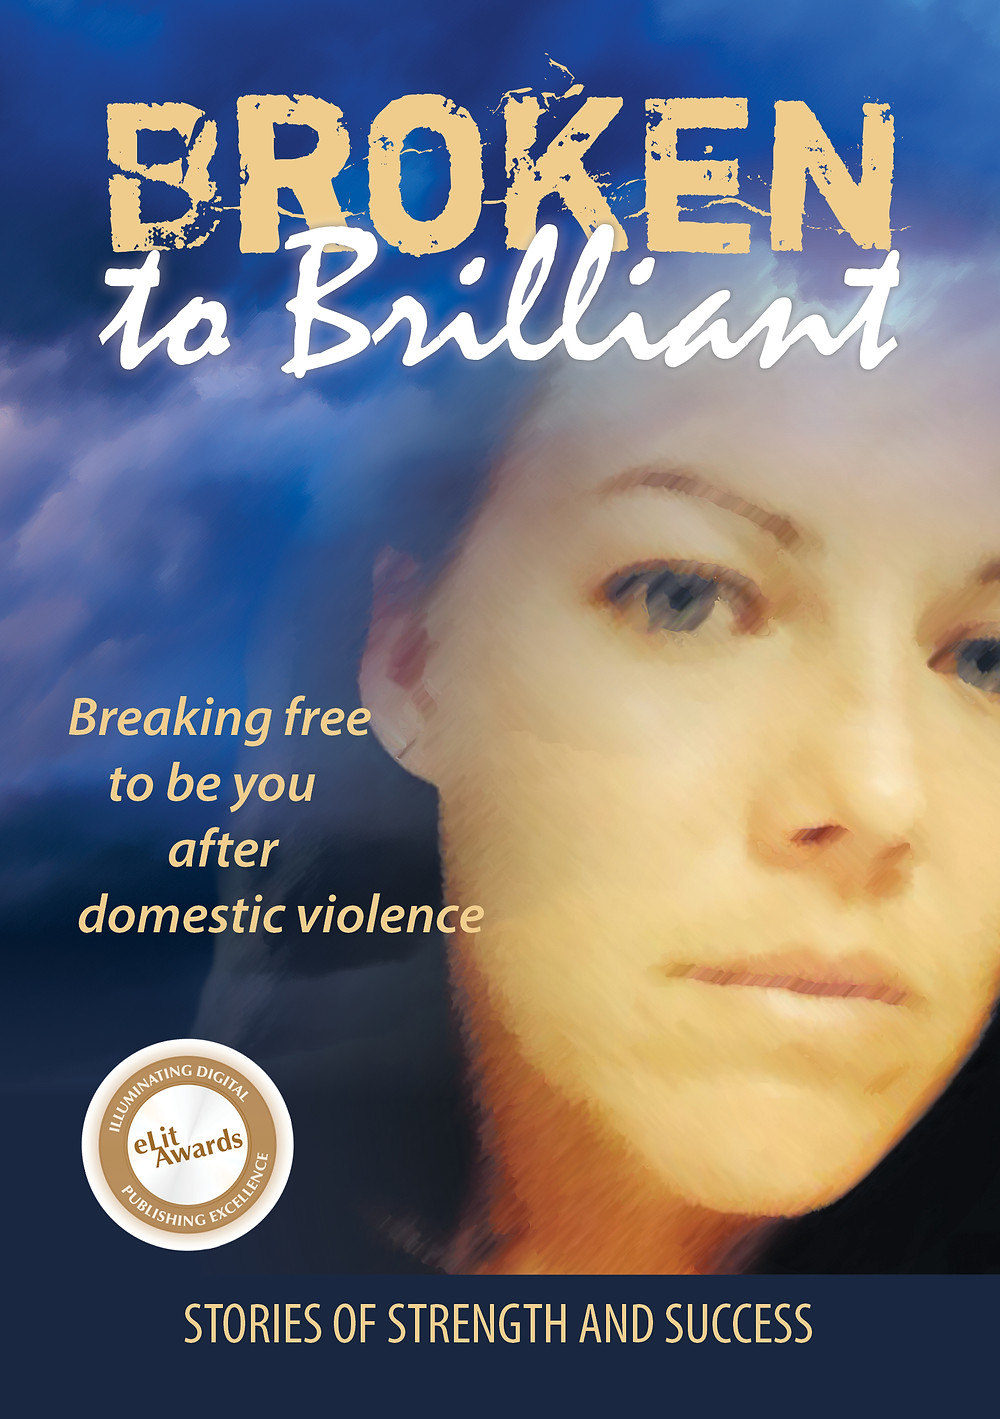 The cover of the book Broken to Brilliant Breaking Free to be you after domestic violence